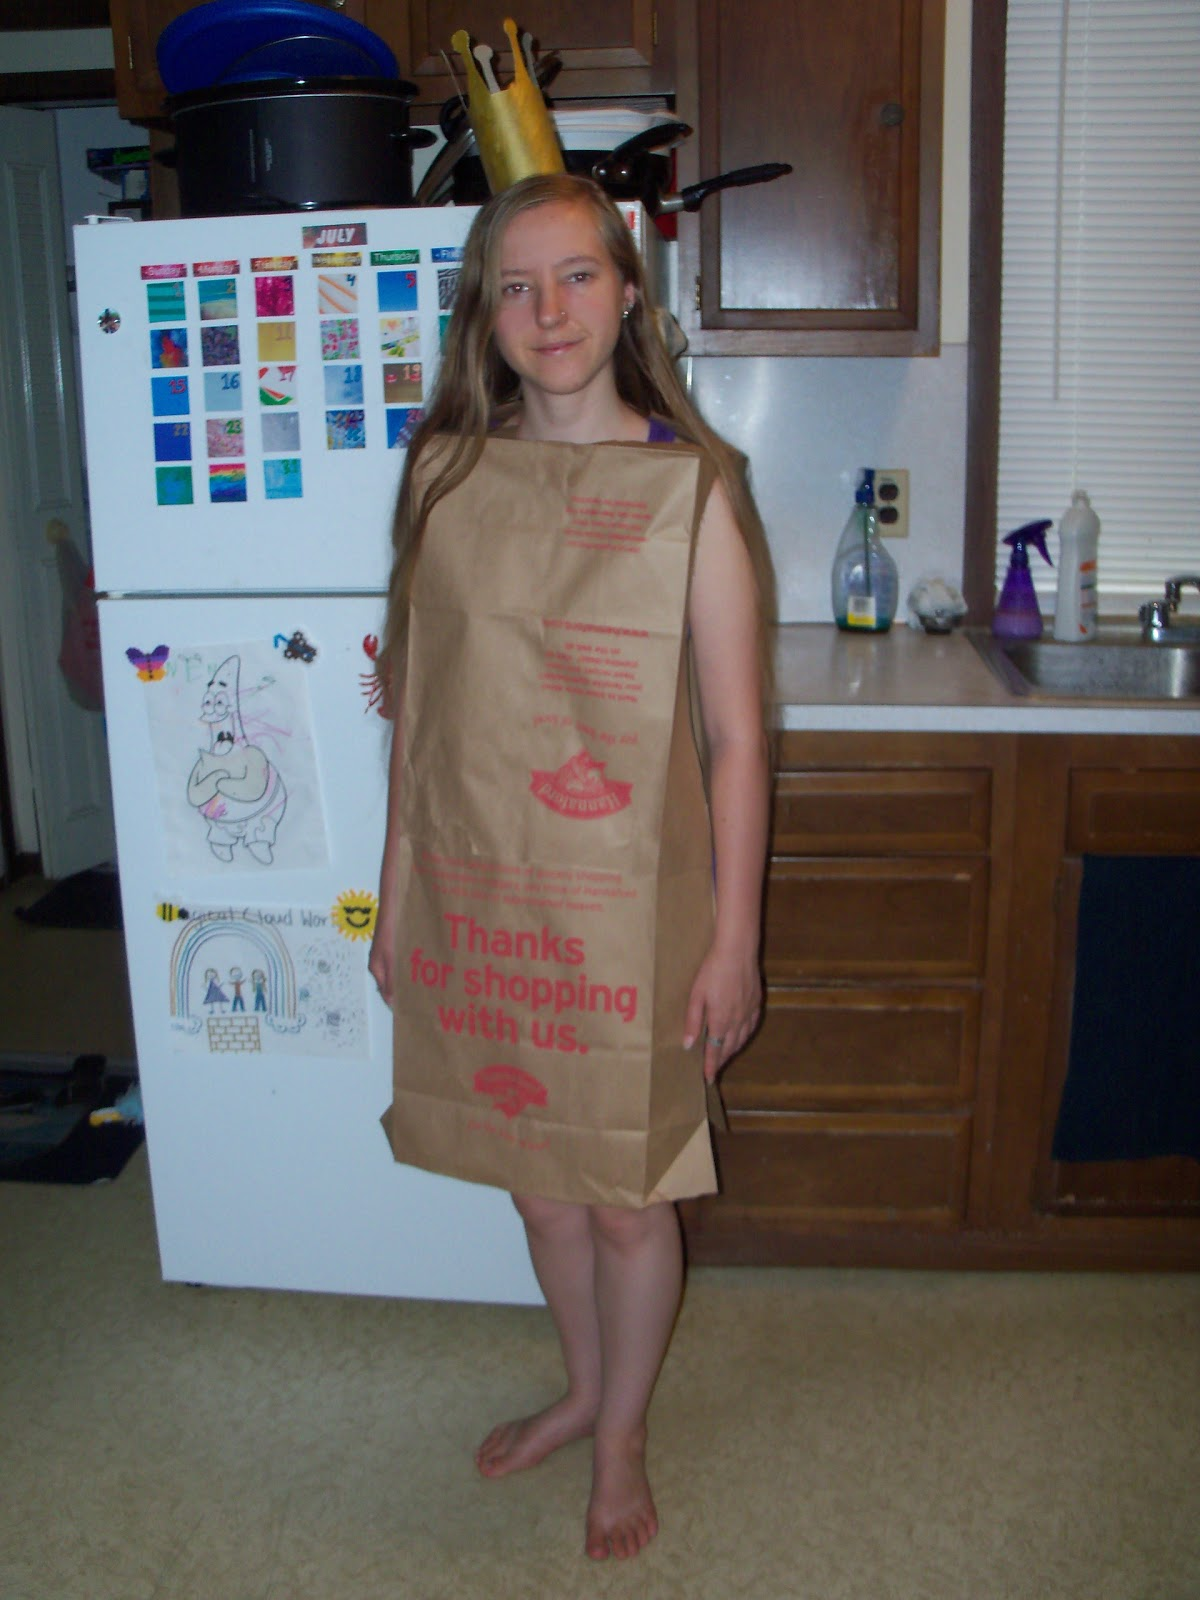 Three Cheap and Easy Halloween Costume Ideas  sc 1 st  Amberu0027s Craft a Week Blog & Amberu0027s Craft a Week Blog: Three Cheap and Easy Halloween Costume Ideas